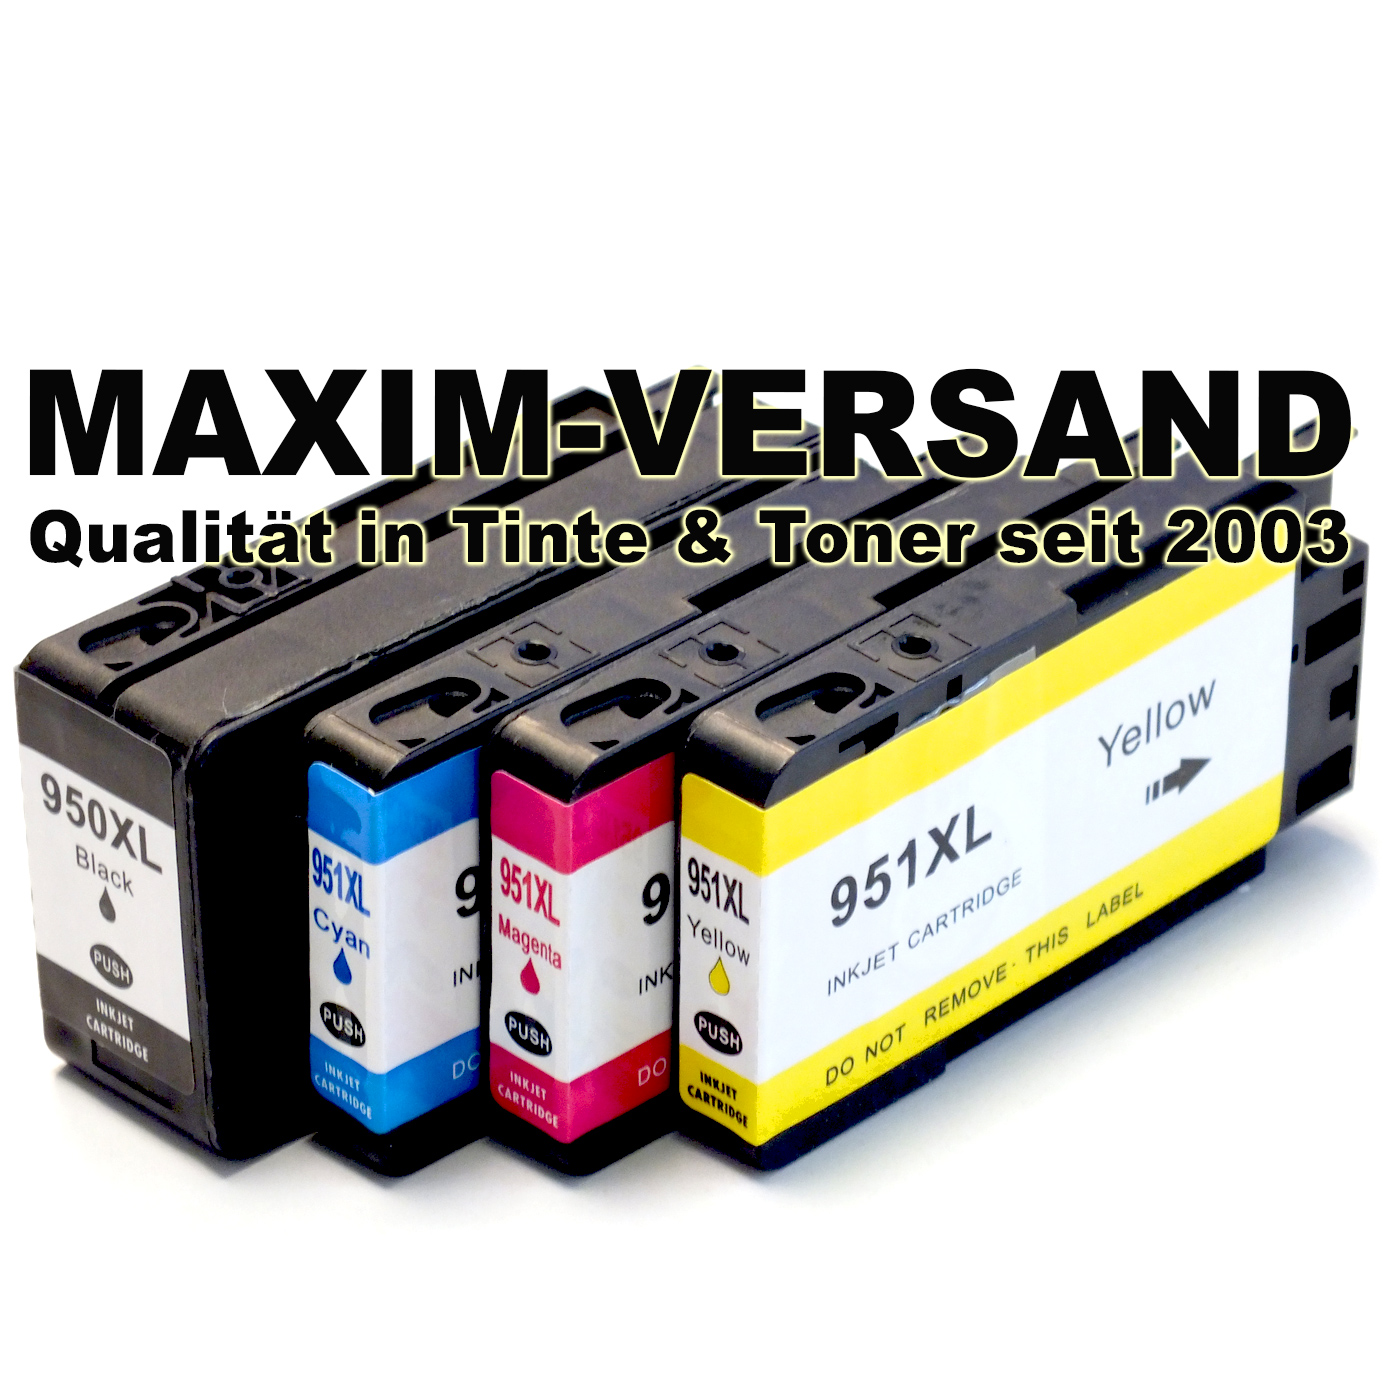 HP 950 XL Black + HP 951 XL Cyan, Yellow, Magenta - kompatibel - (4er Set)